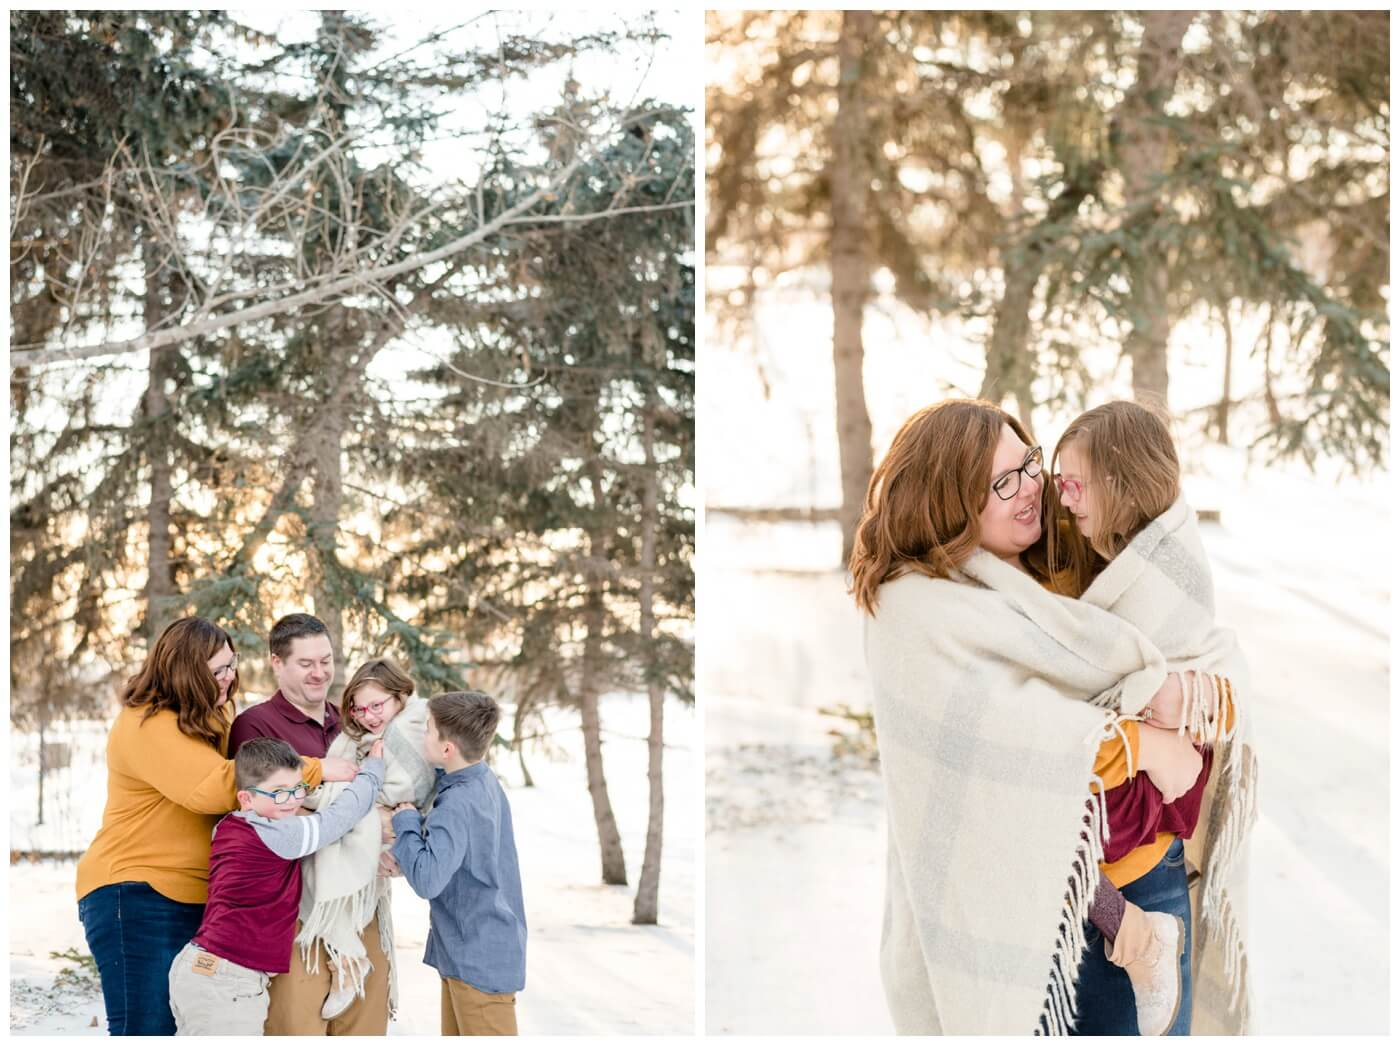 Regina Family Photography- Goudy Family - Winter Family Session - Snow - Candy Cane Park - Mother holding daughter in grey knit blanket